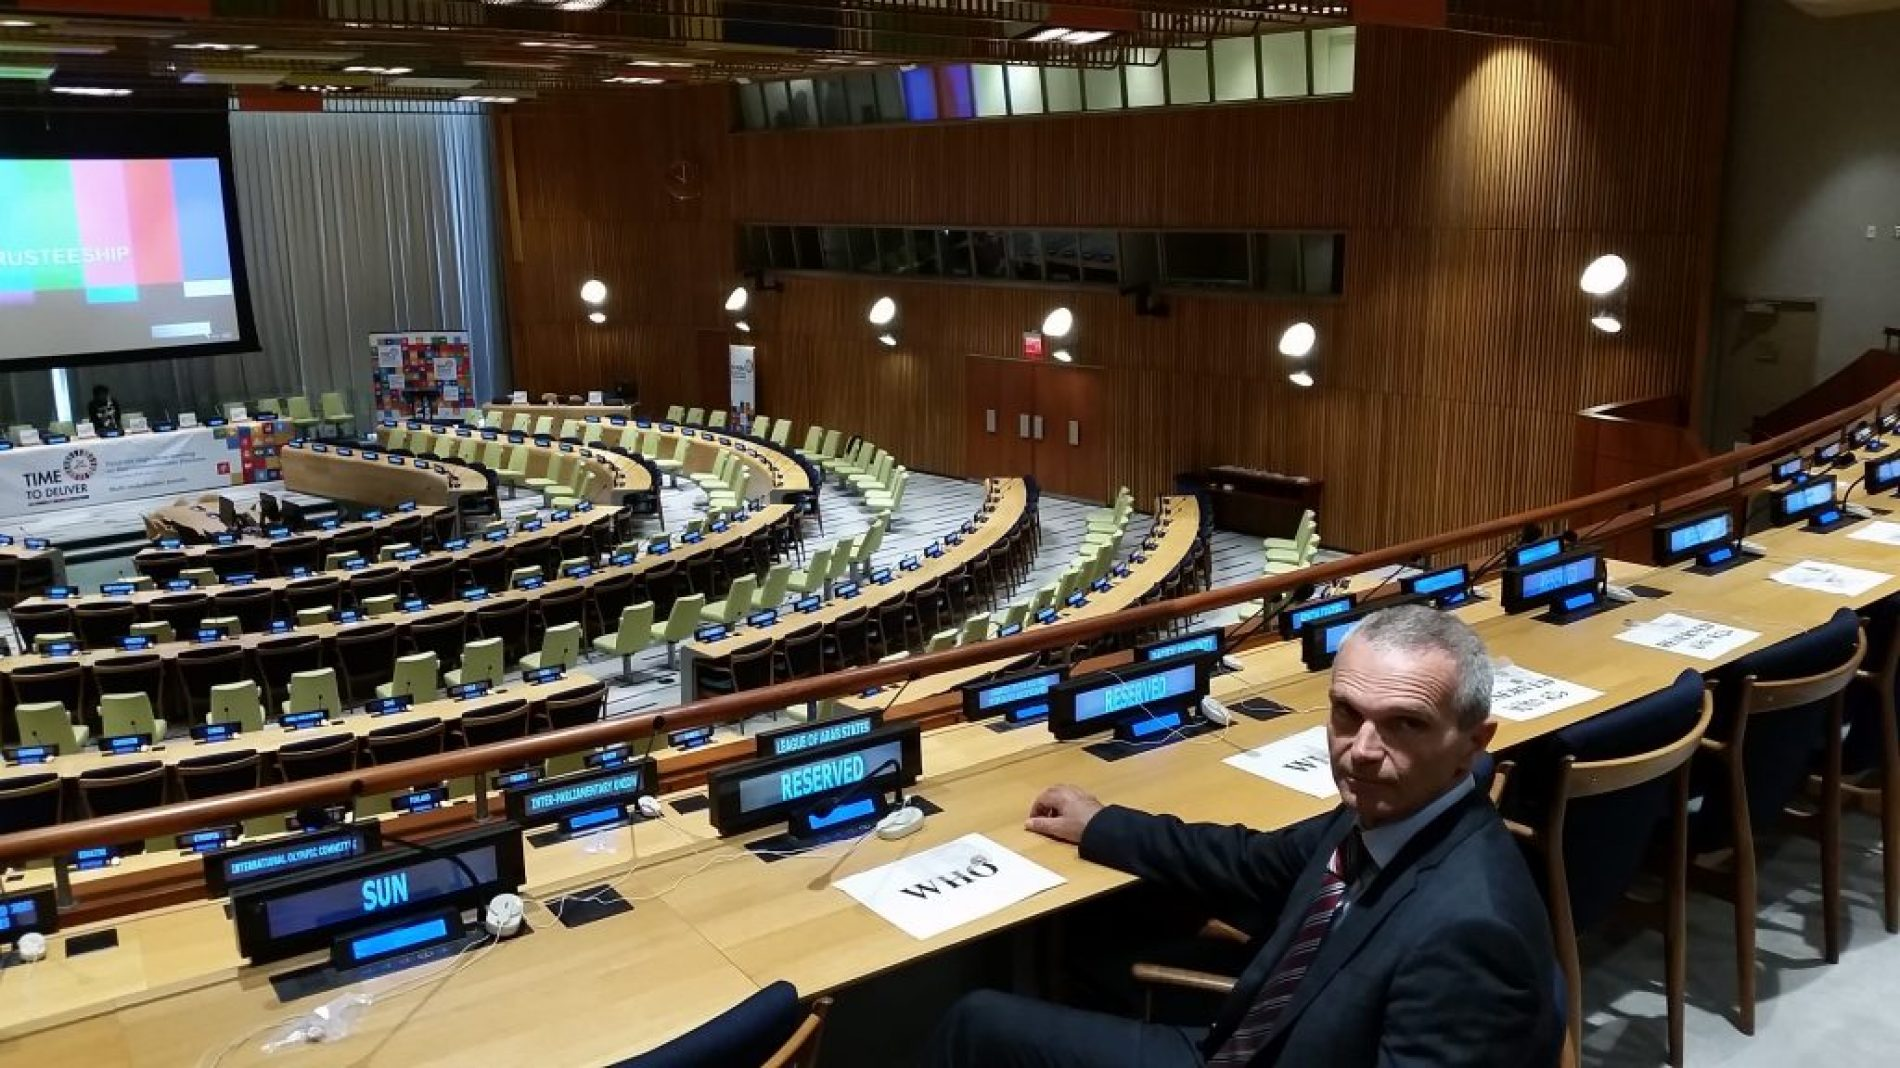 Riccardo Polosa at the United Nations General Assembly